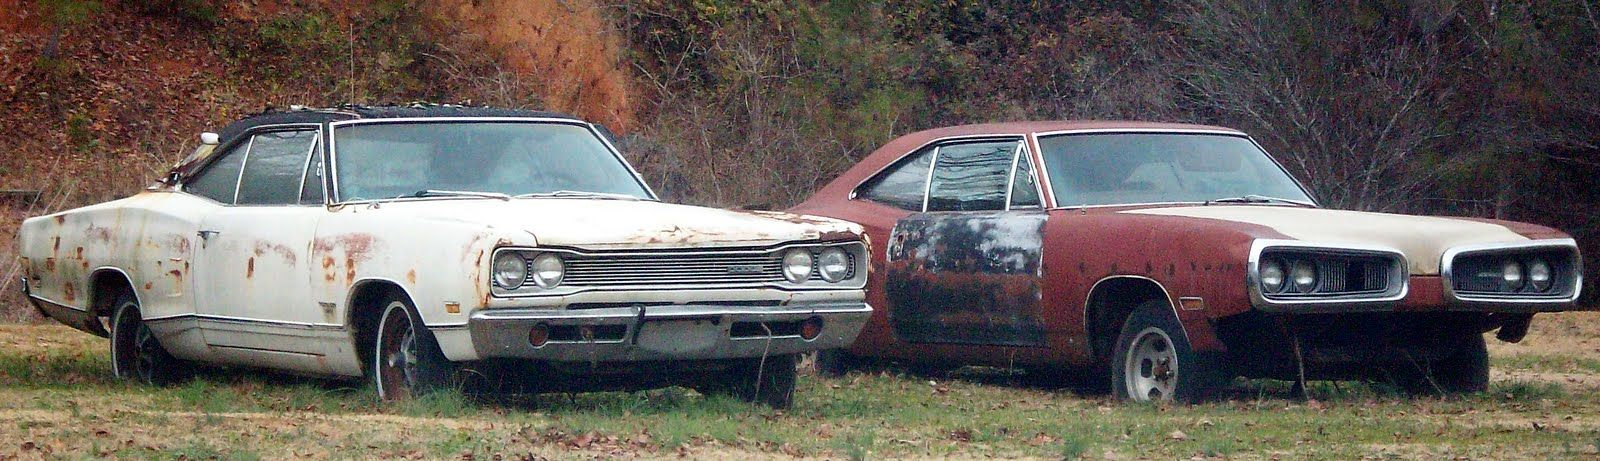 Pin by Mark Stubbington on Wrecked muscle cars ! | Pinterest | Cars